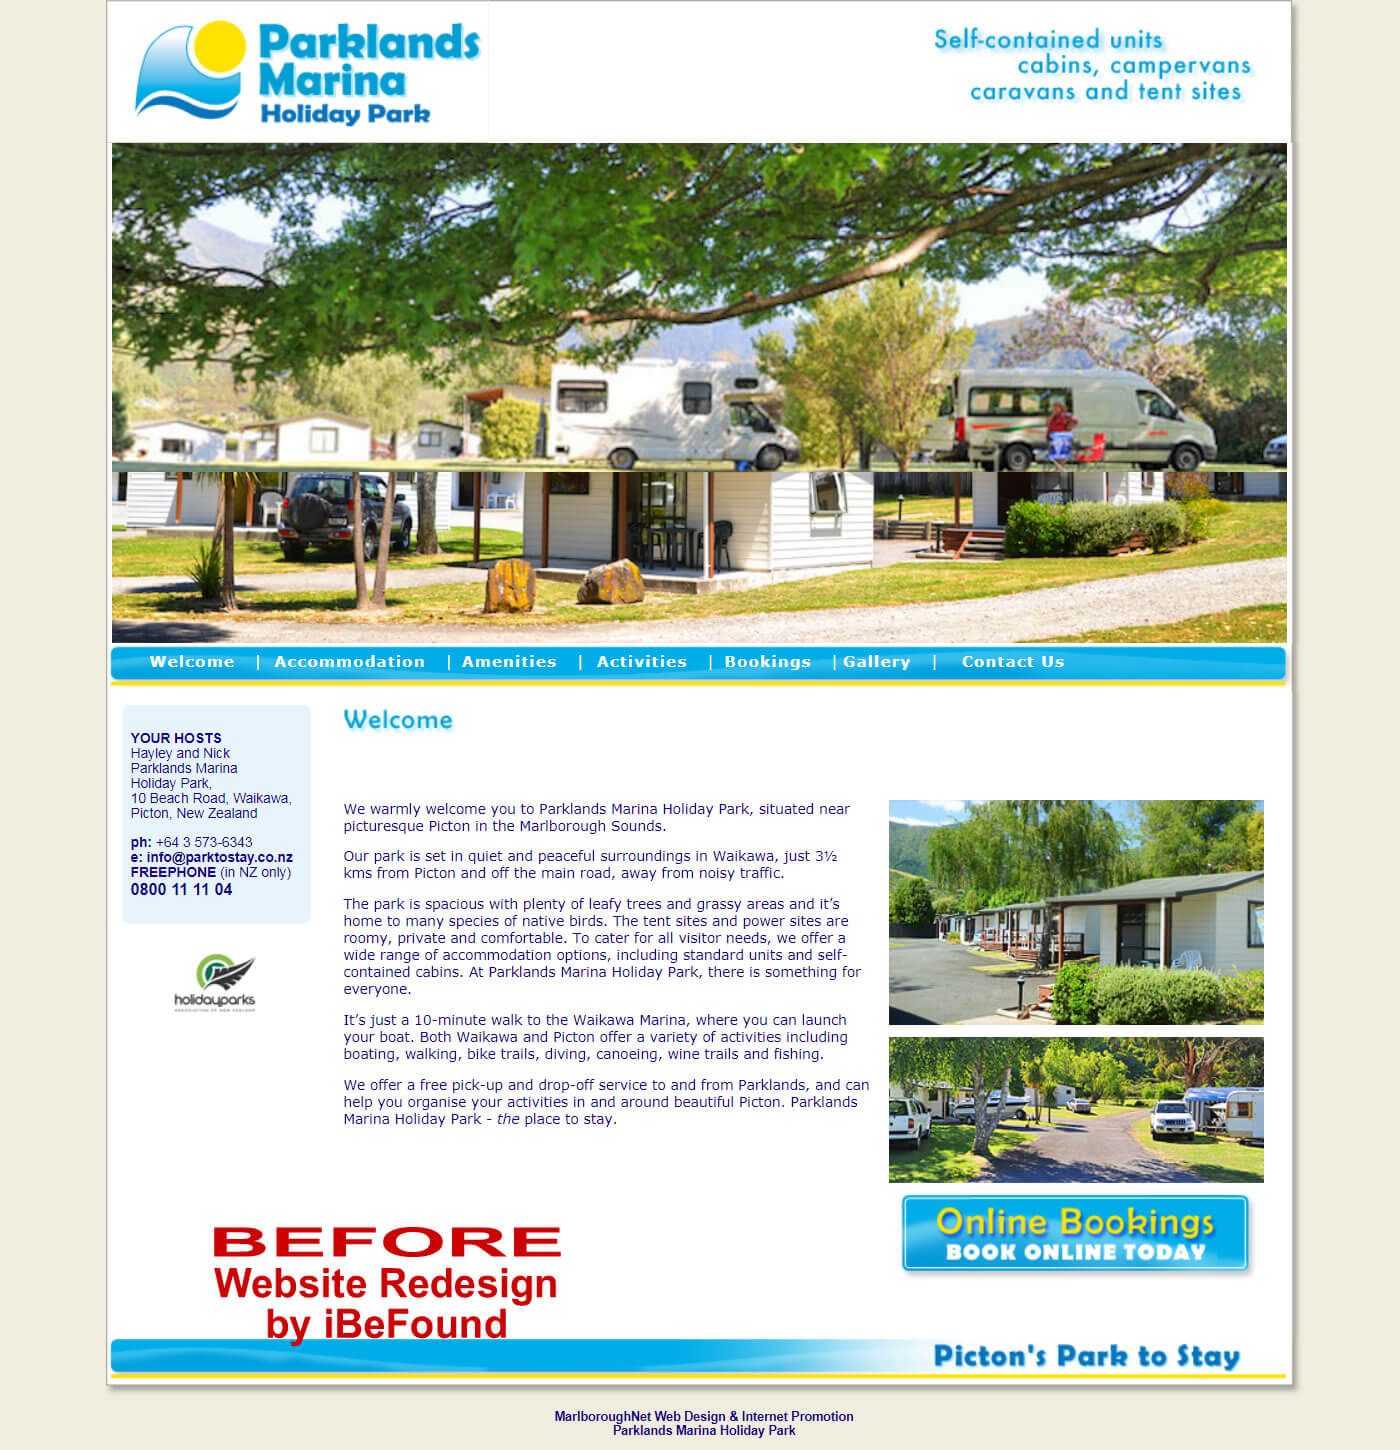 Homepage Of Parklands Marina Holiday Park In Picton Before Website Redesign By IBeFound